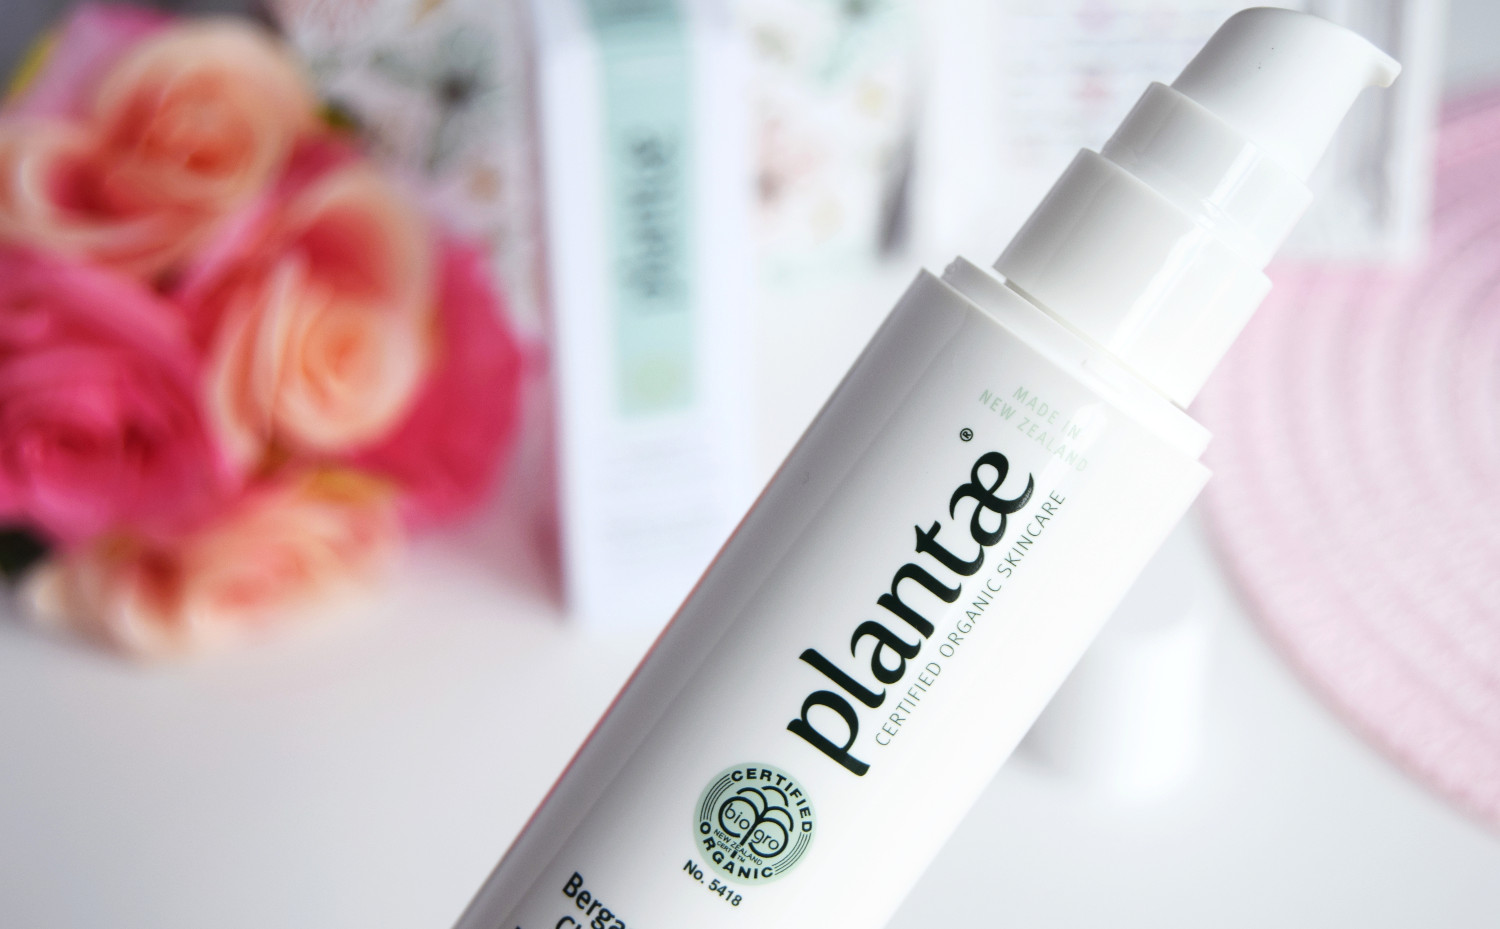 Plantae_Bergamot_Orange_Cleansing_Milk_review_Zalabell_beauty_1